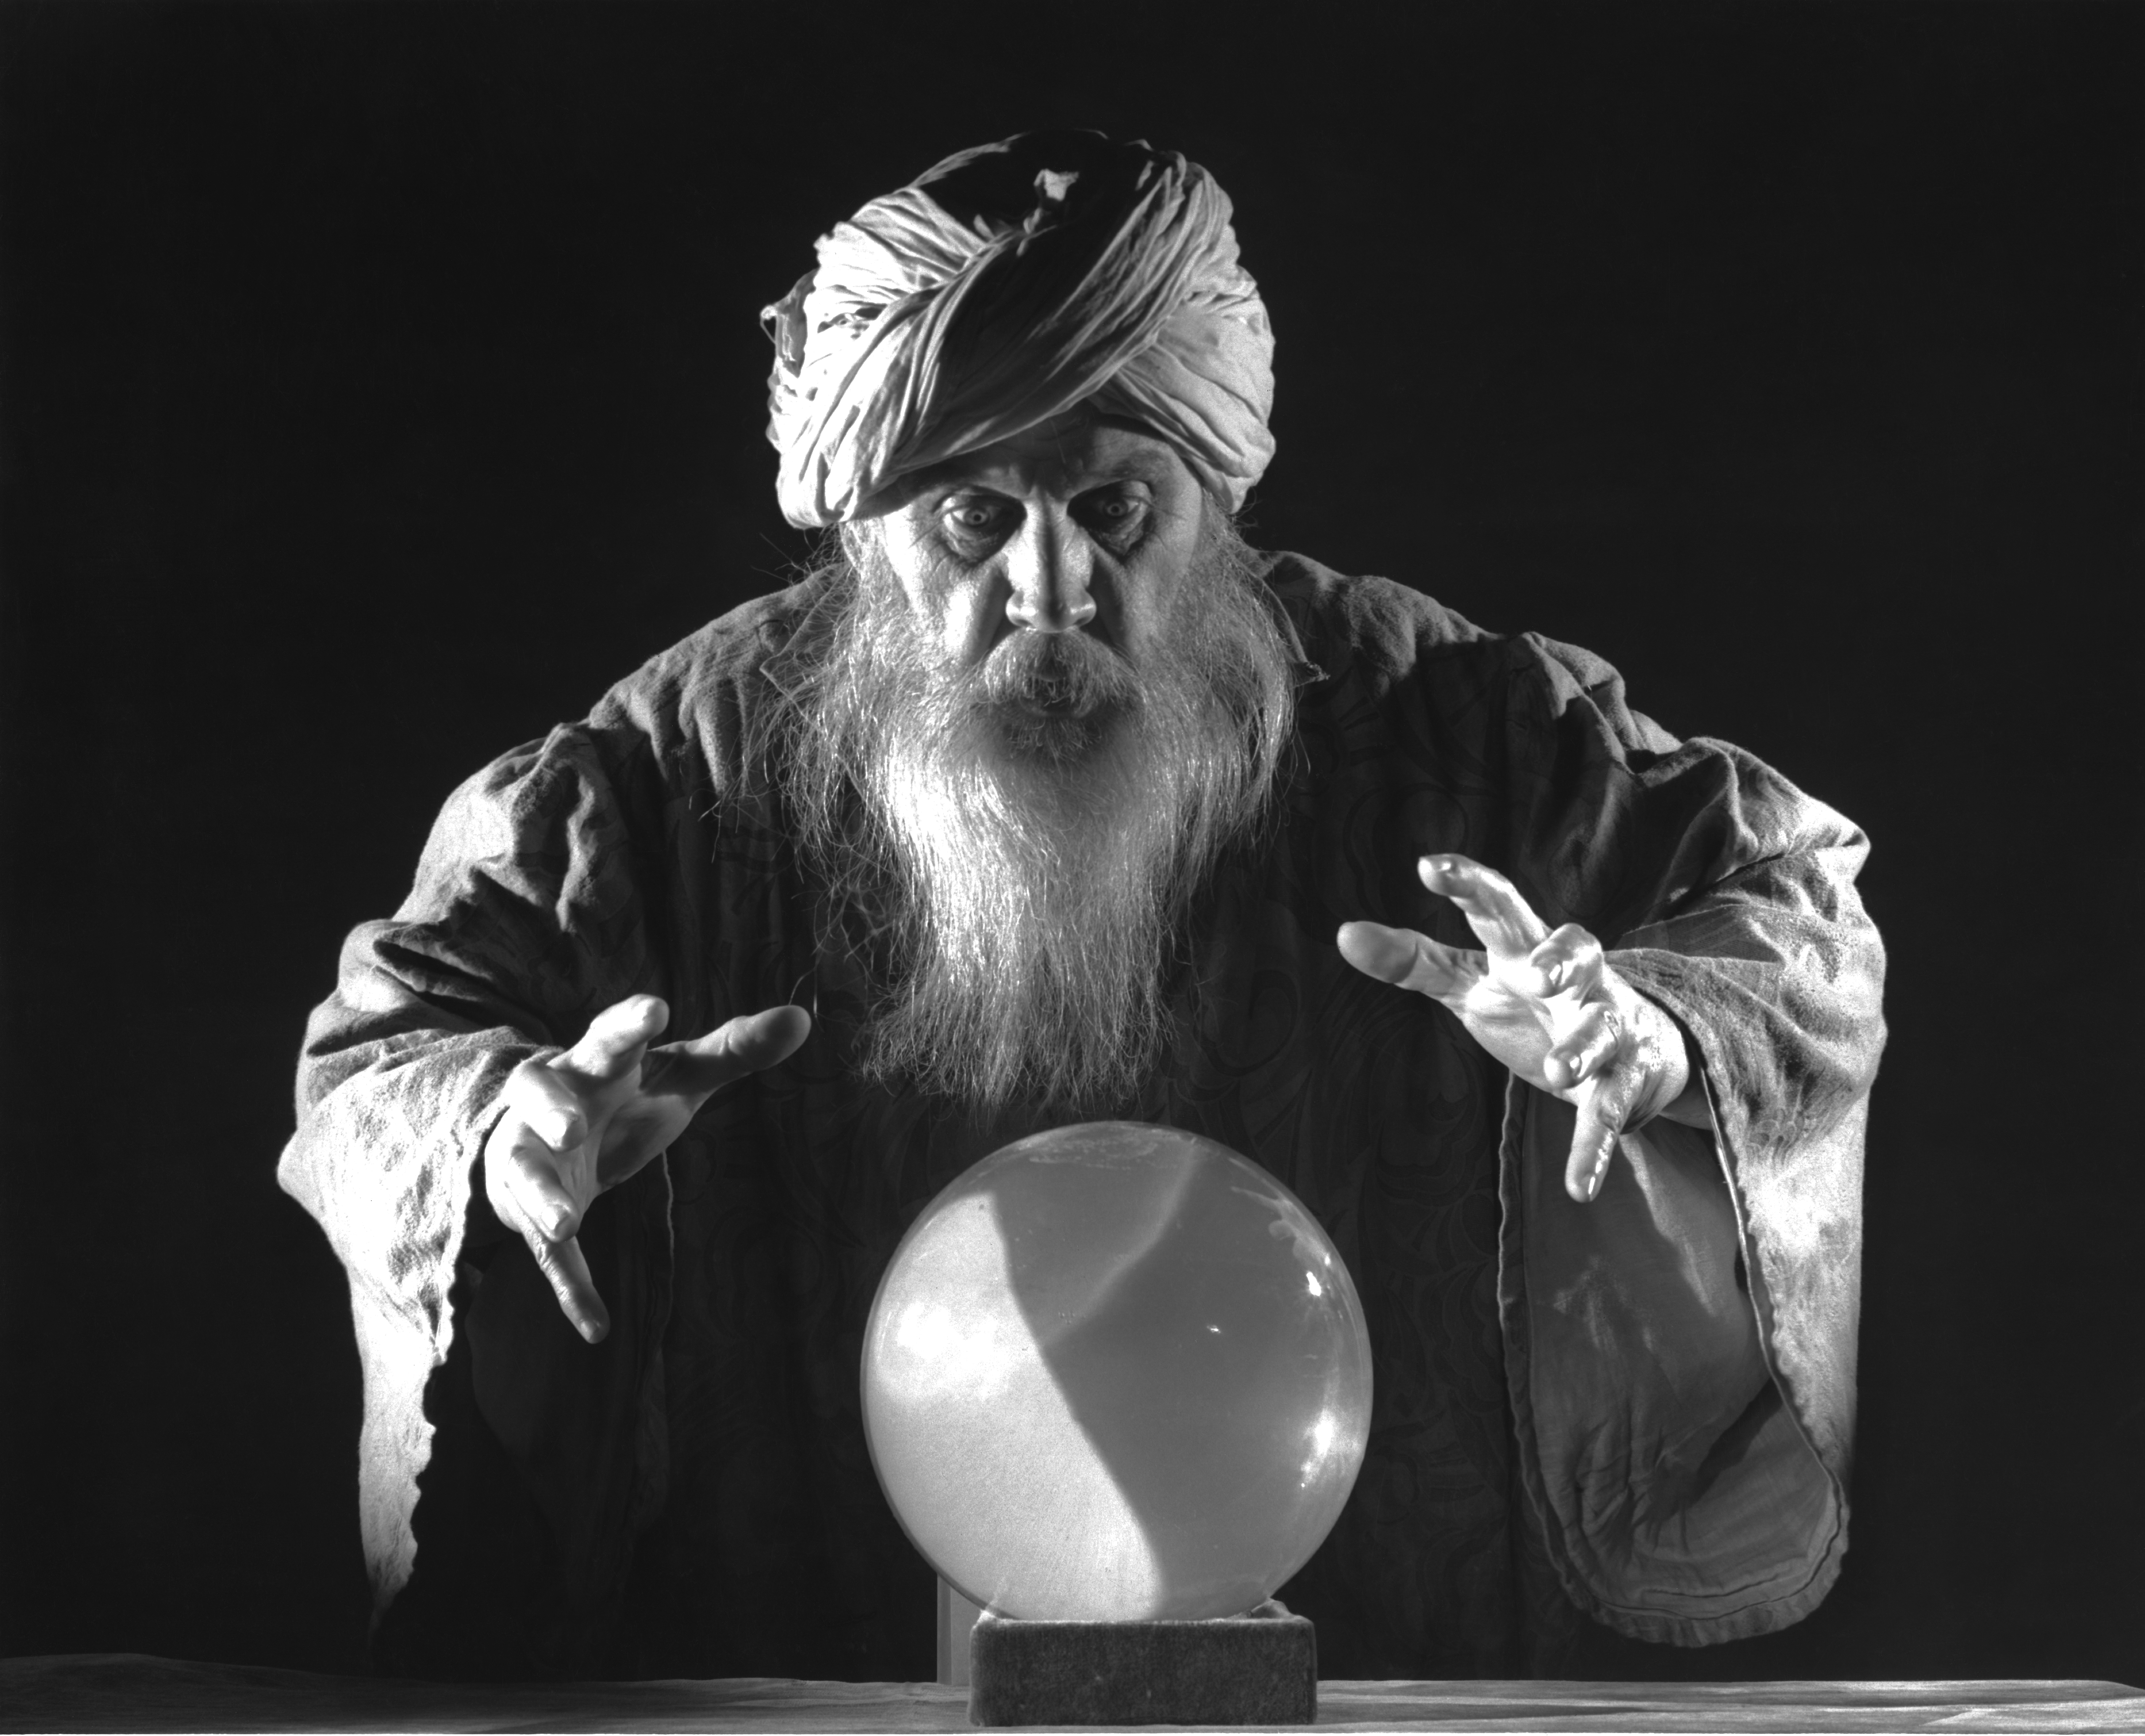 Wizard Man With Hands Out and Around Crystal Ball